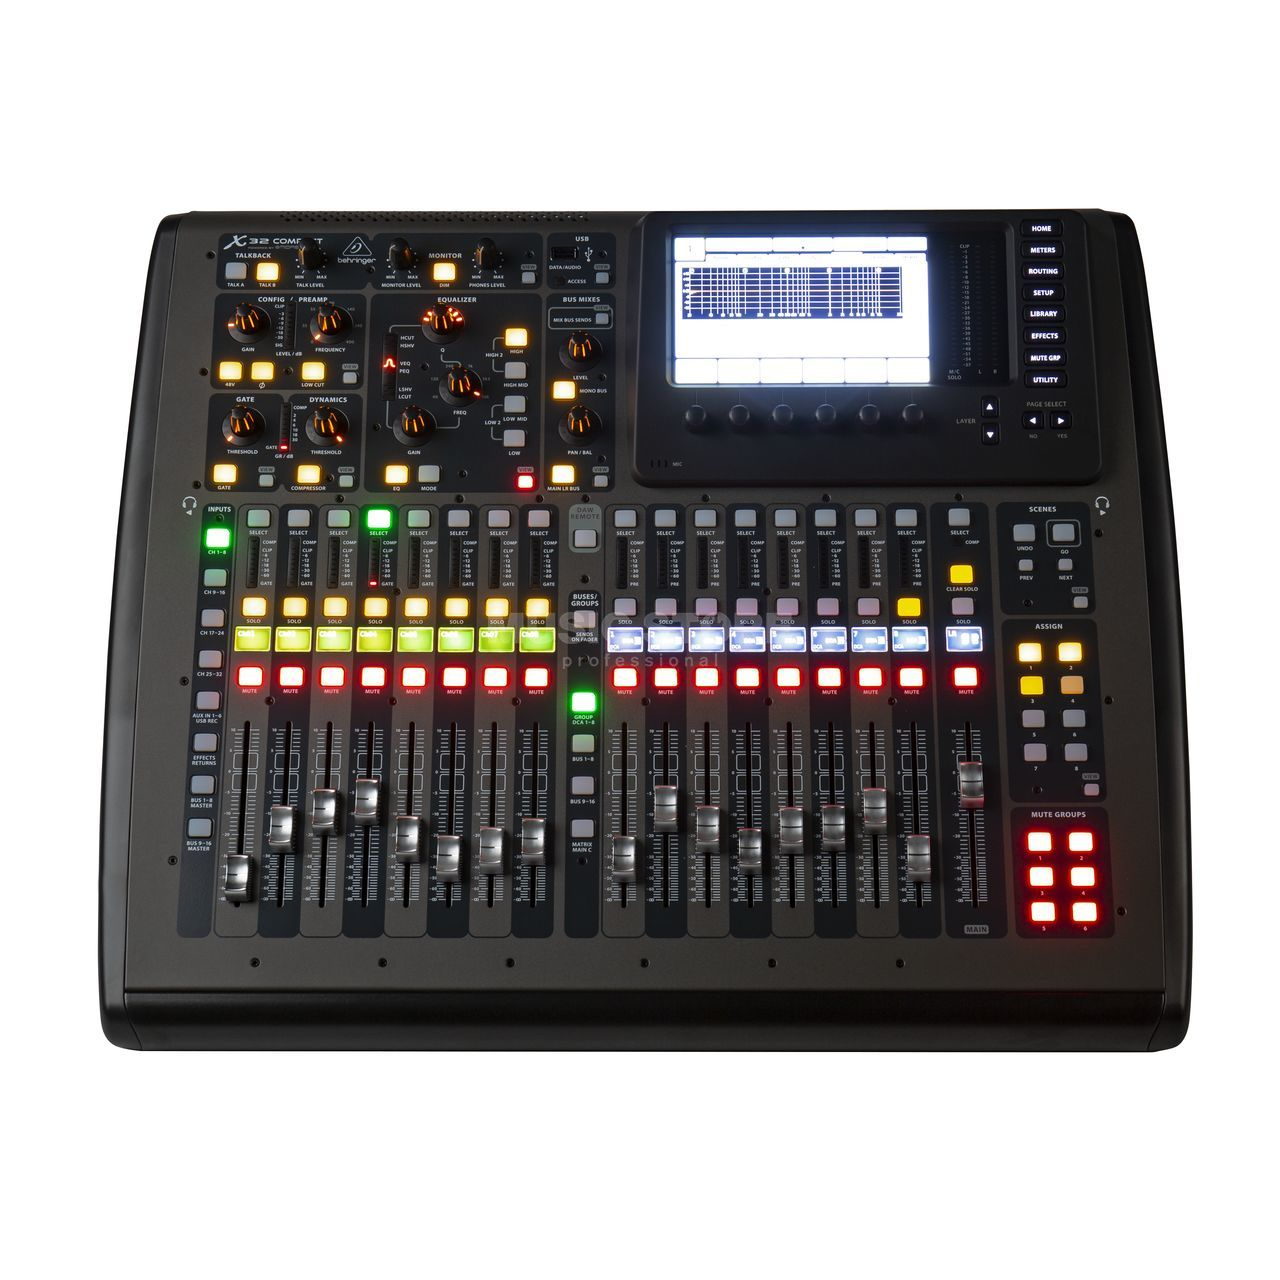 behringer x32 compact digital mixer w midas preamps dv247 en gb. Black Bedroom Furniture Sets. Home Design Ideas